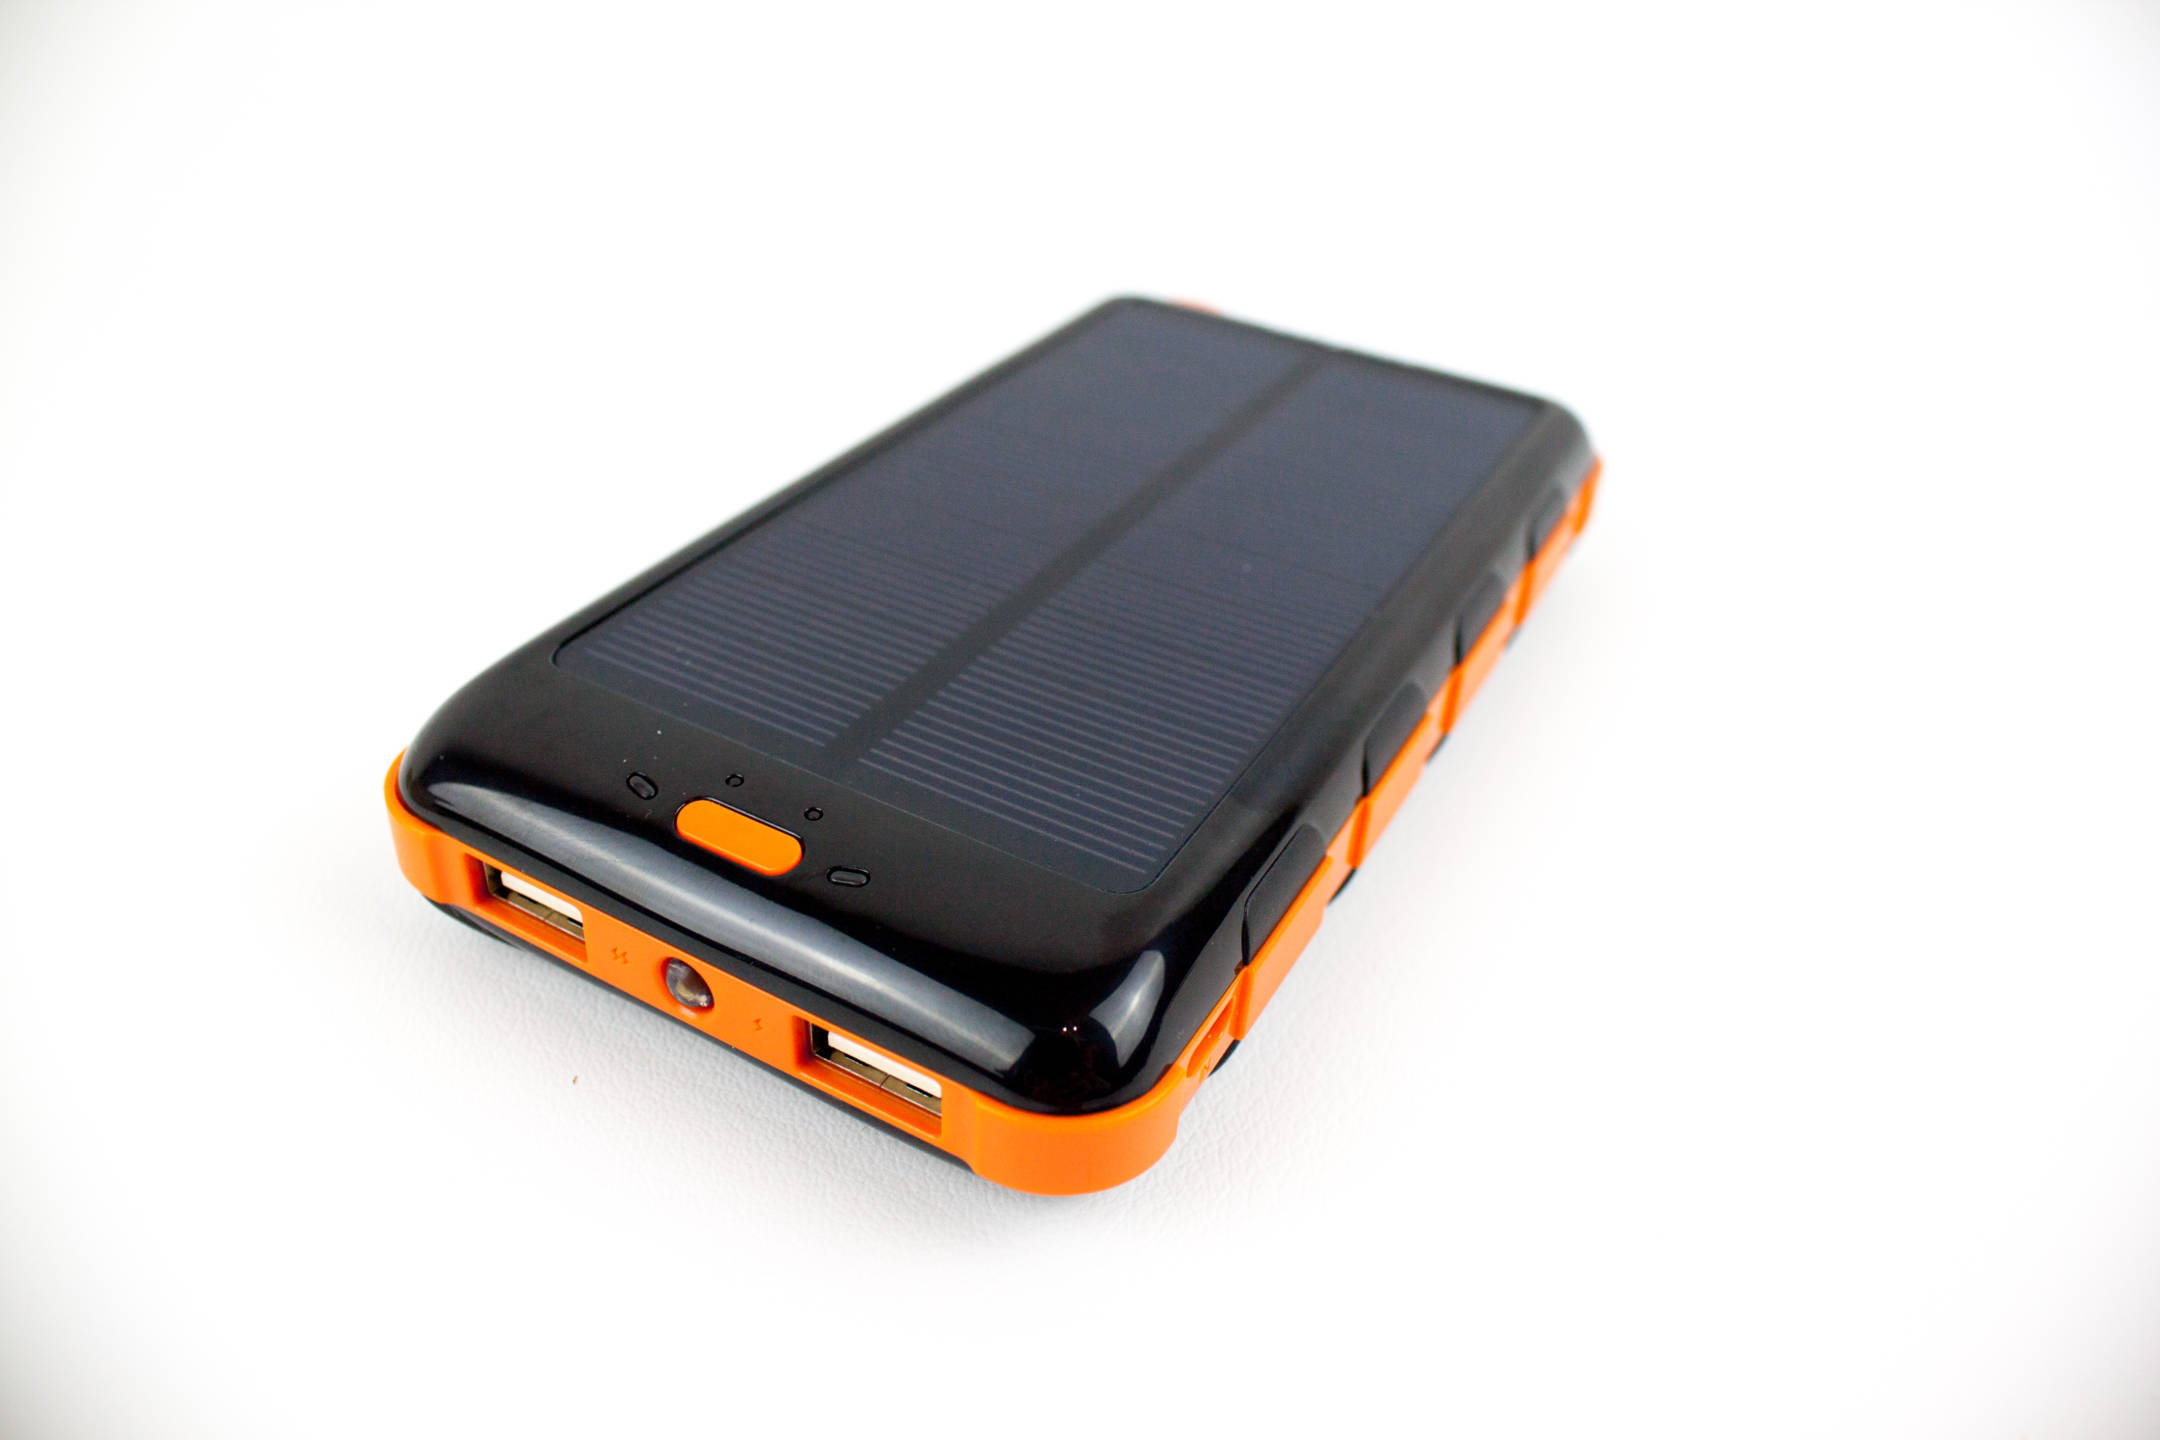 easyacc 15000mah solar ladeger t power bank mobiler akku. Black Bedroom Furniture Sets. Home Design Ideas